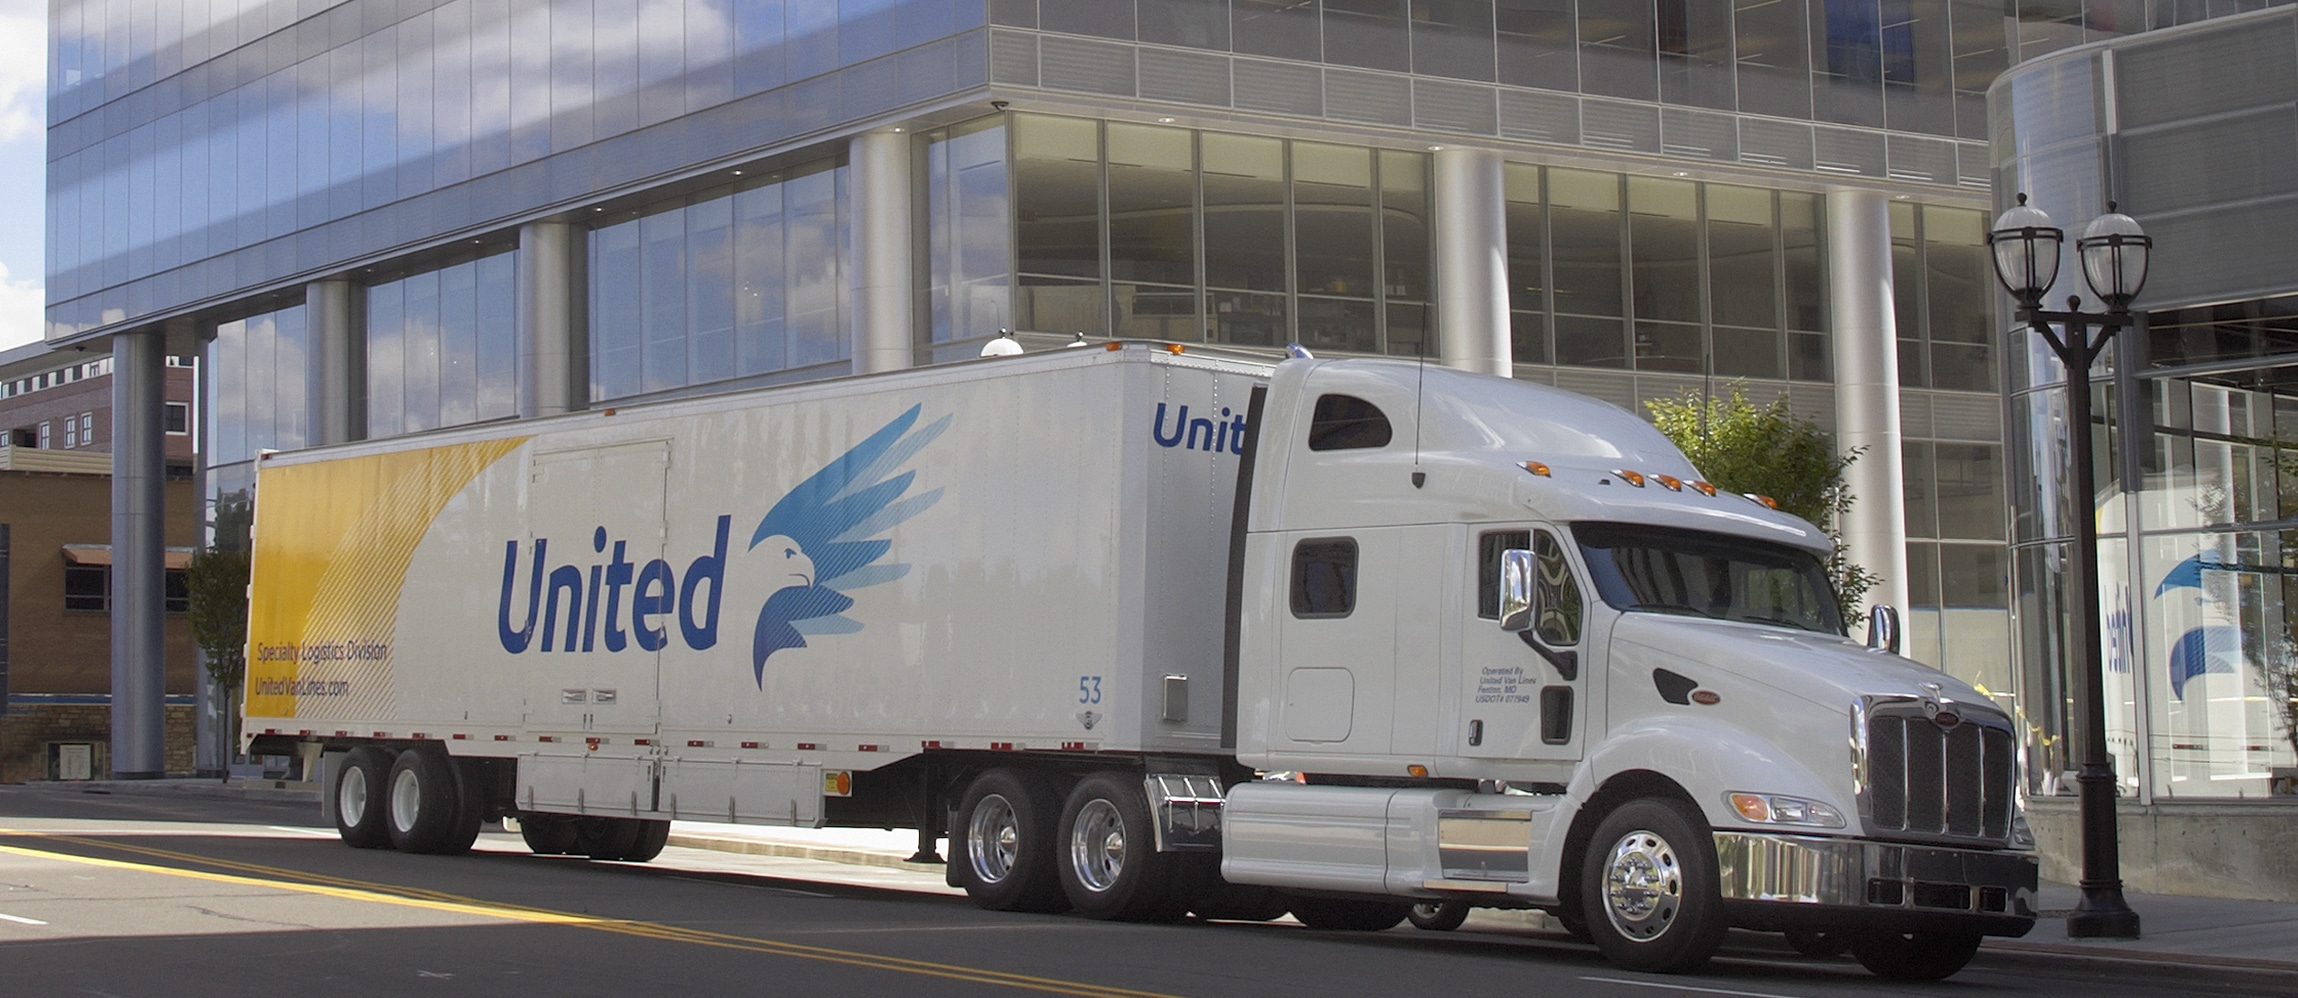 United truck park in front of office building